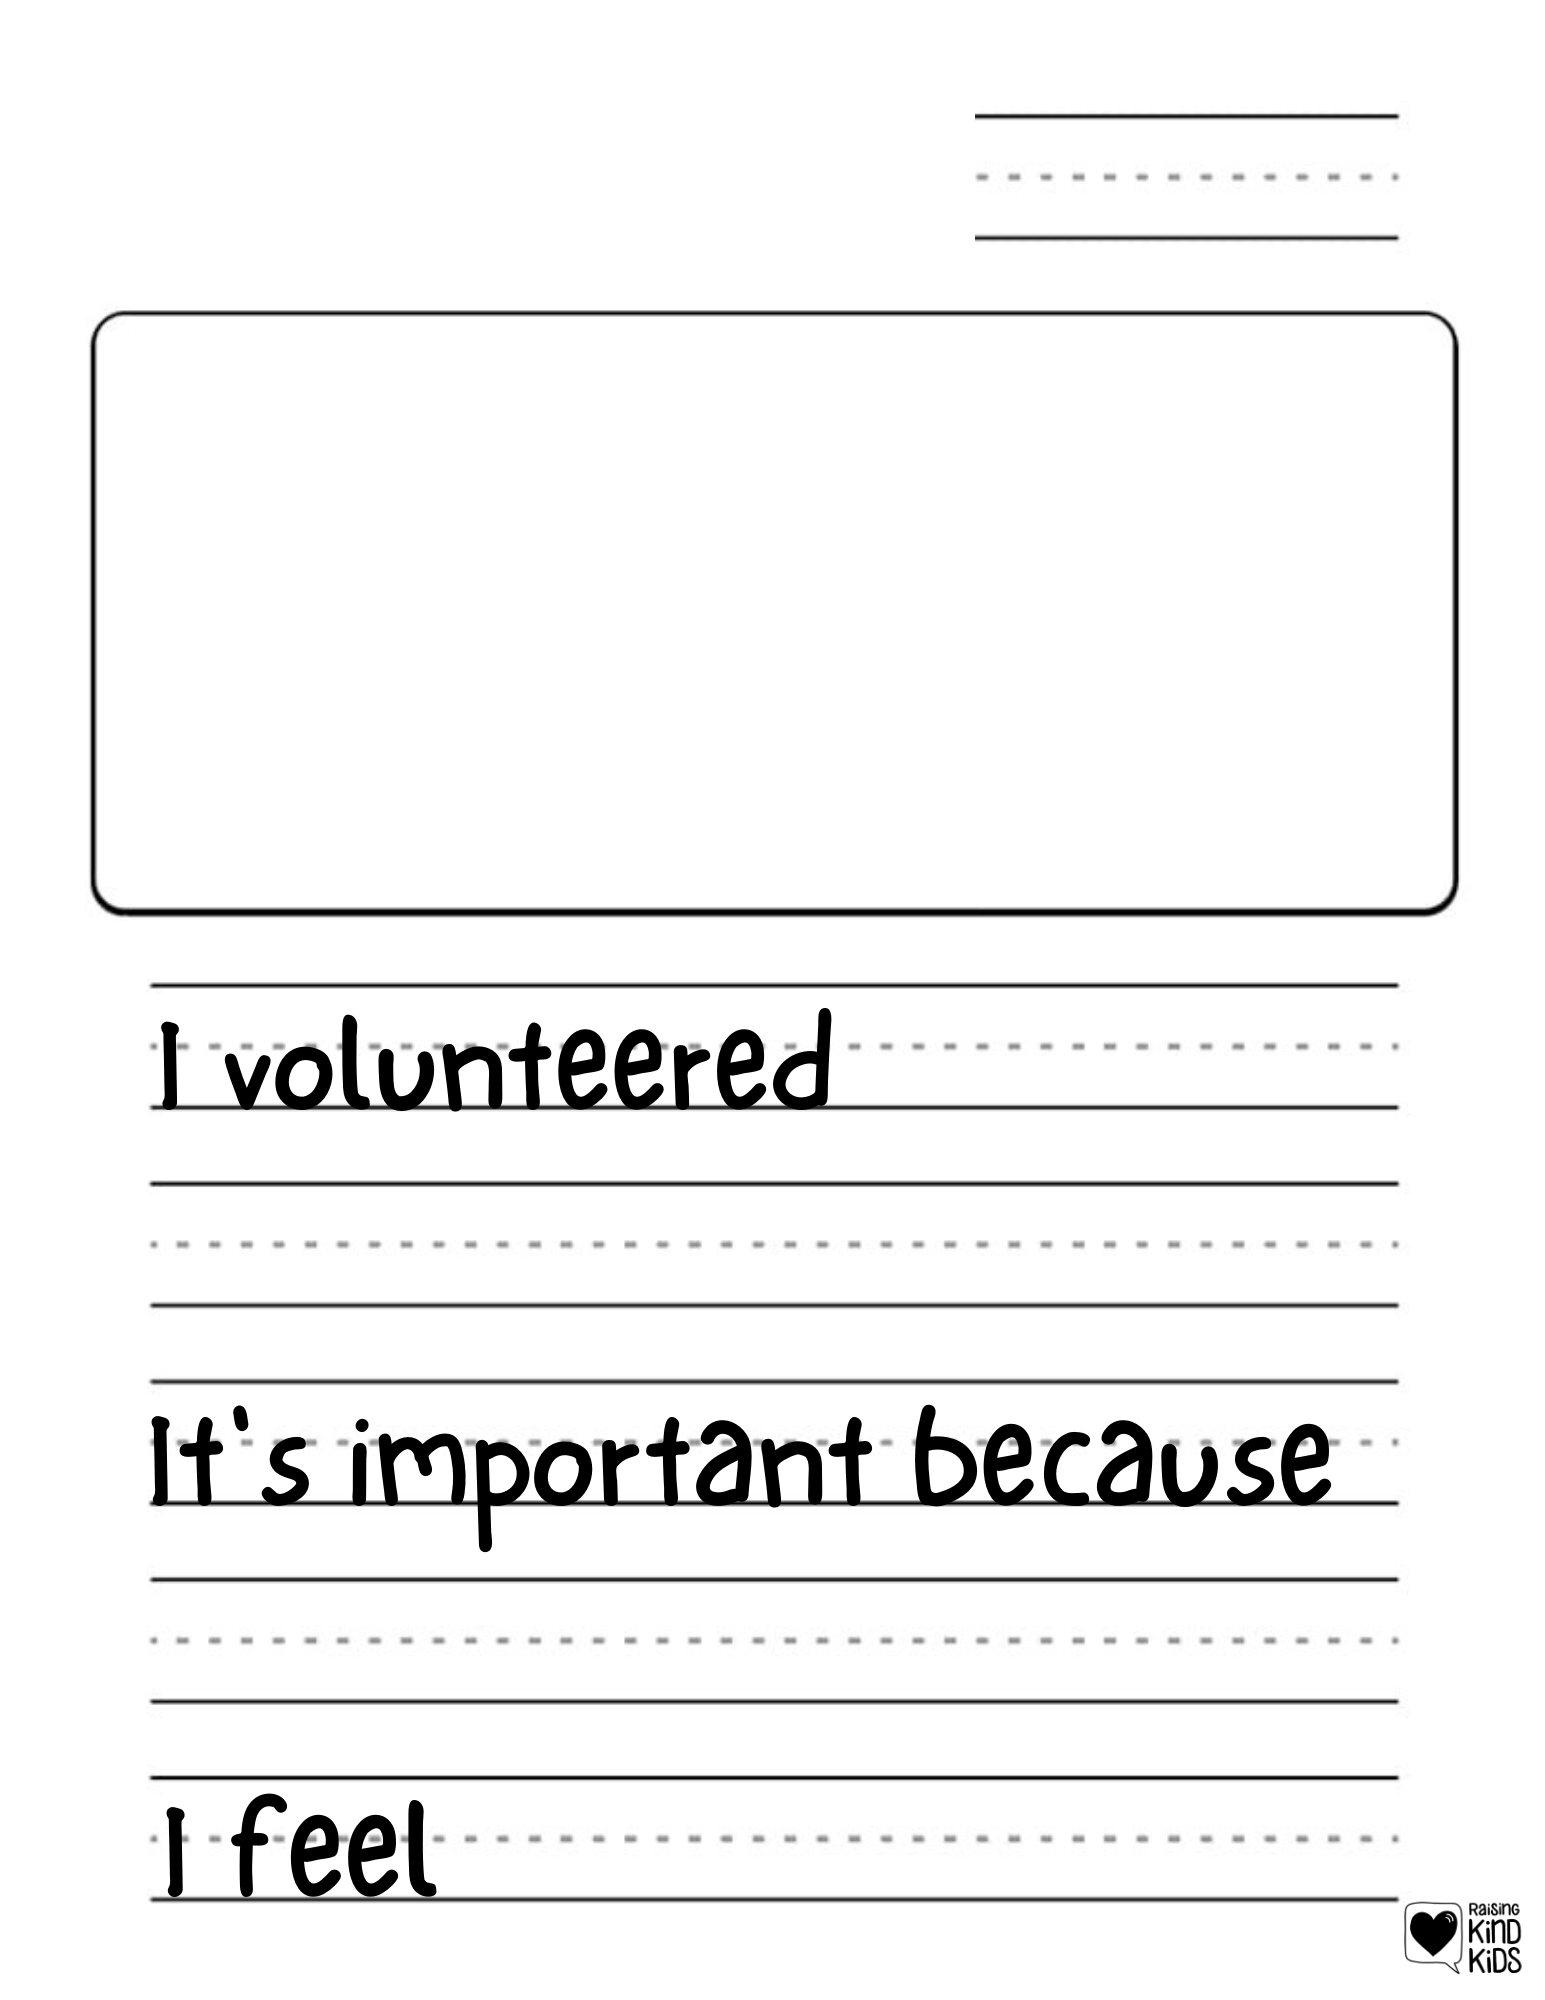 Make volunteering more meaningful and impactful with this volunteer journal and 7 other ways to make volunteering more of a habit for kids.